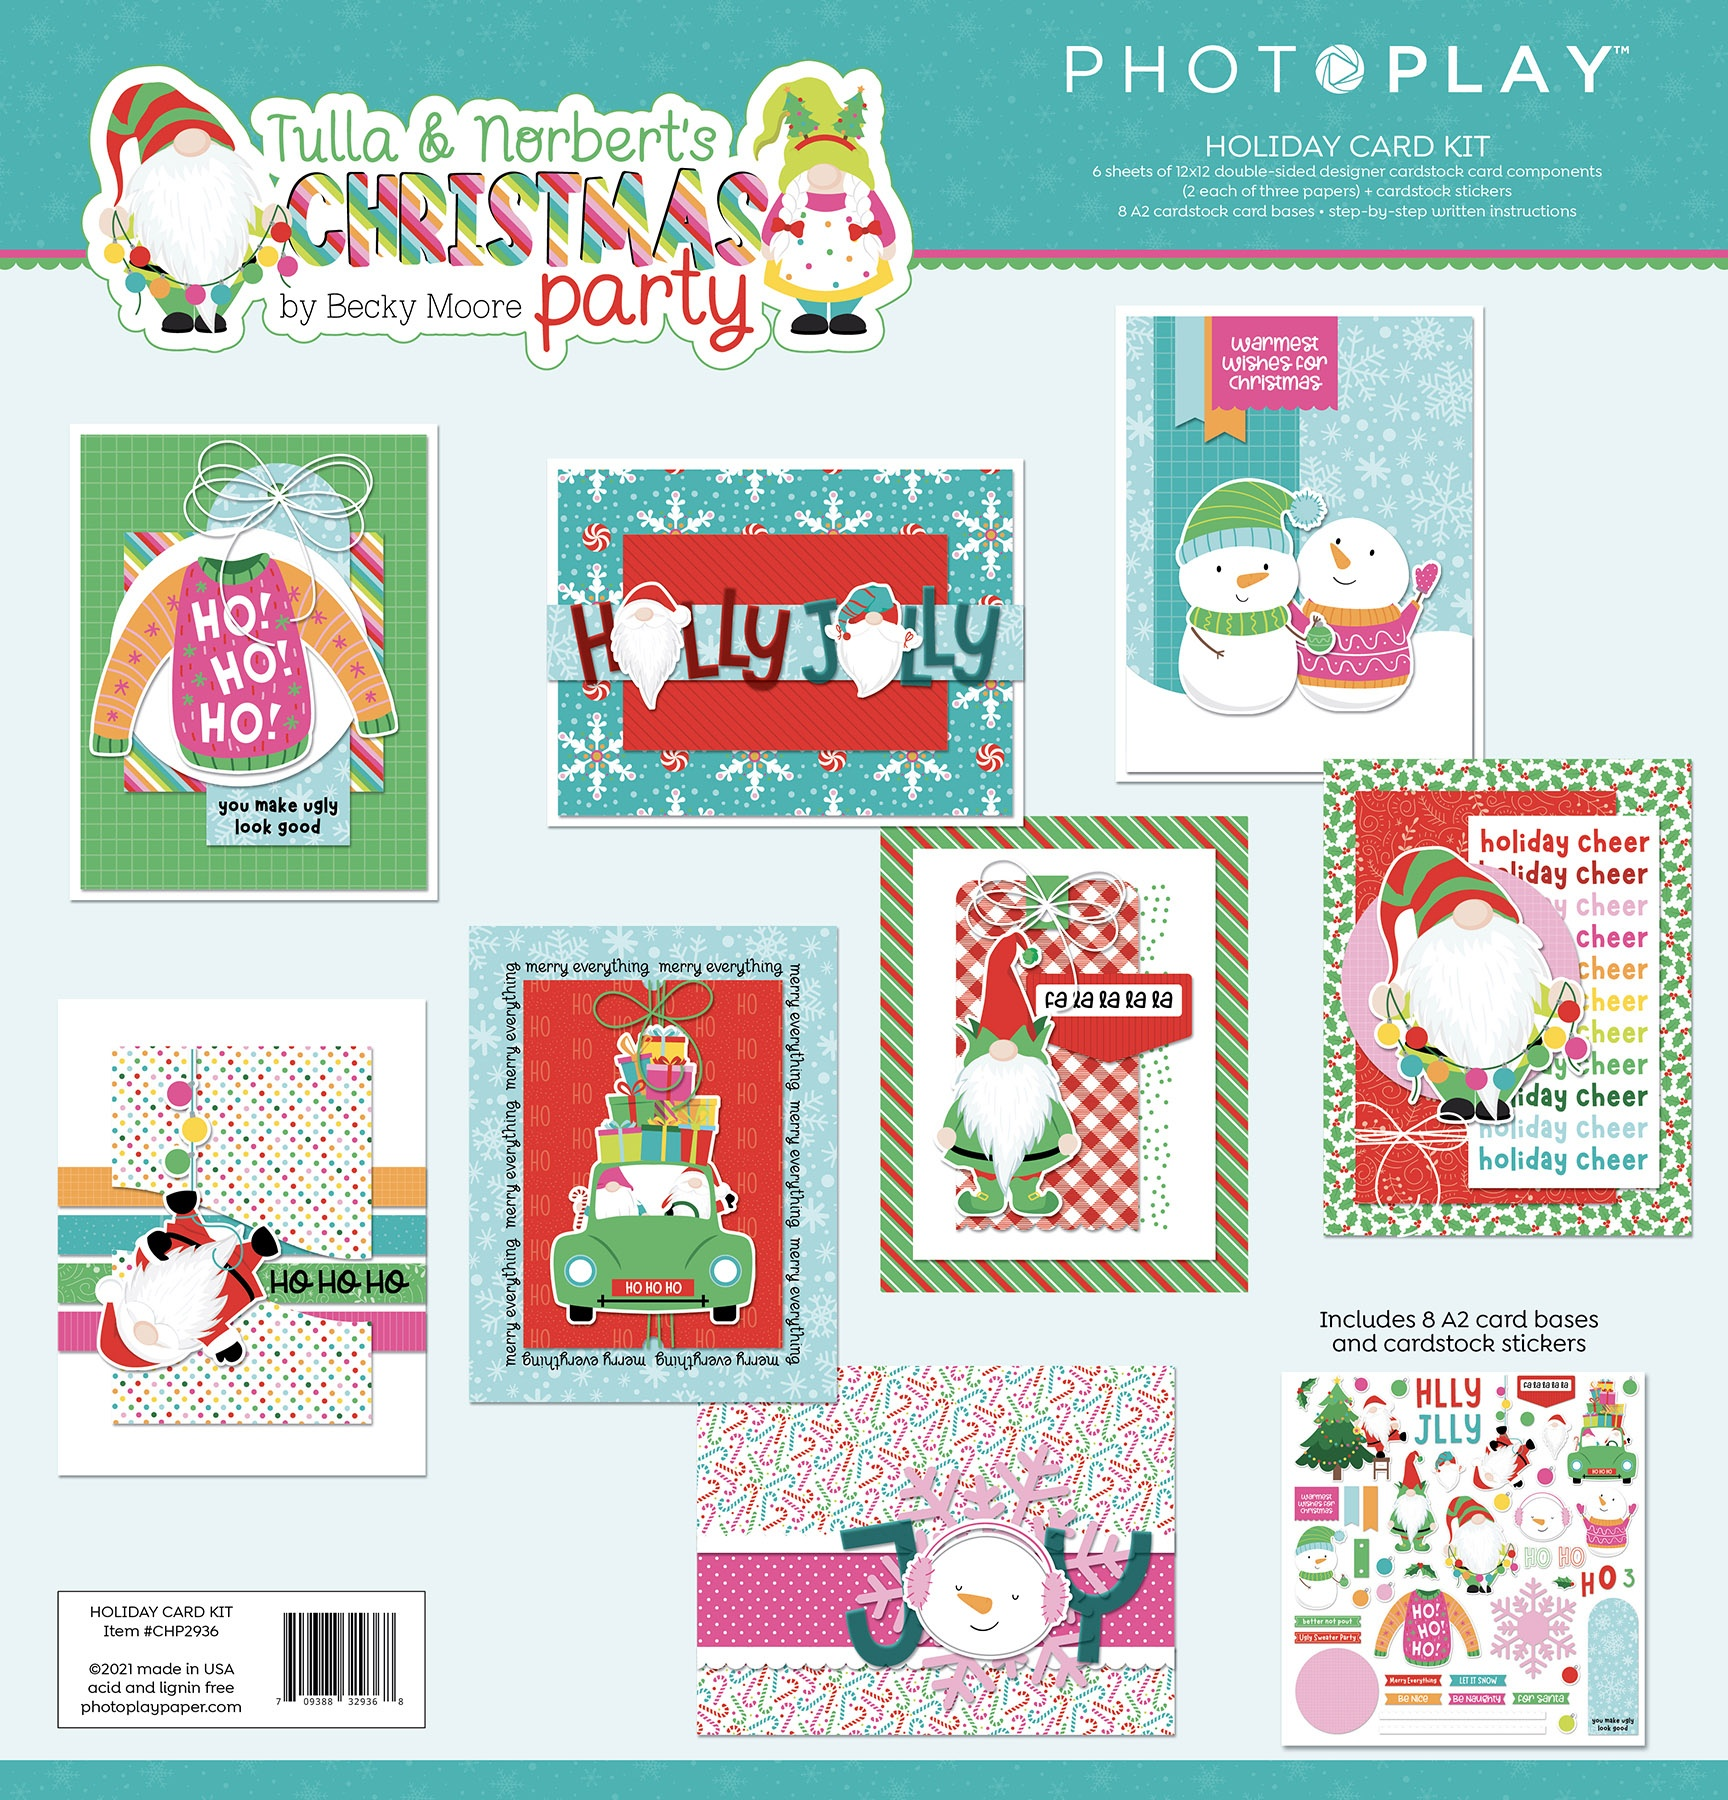 PhotoPlay Collection Card Kit-Tulla & Norbet's Christmas Party